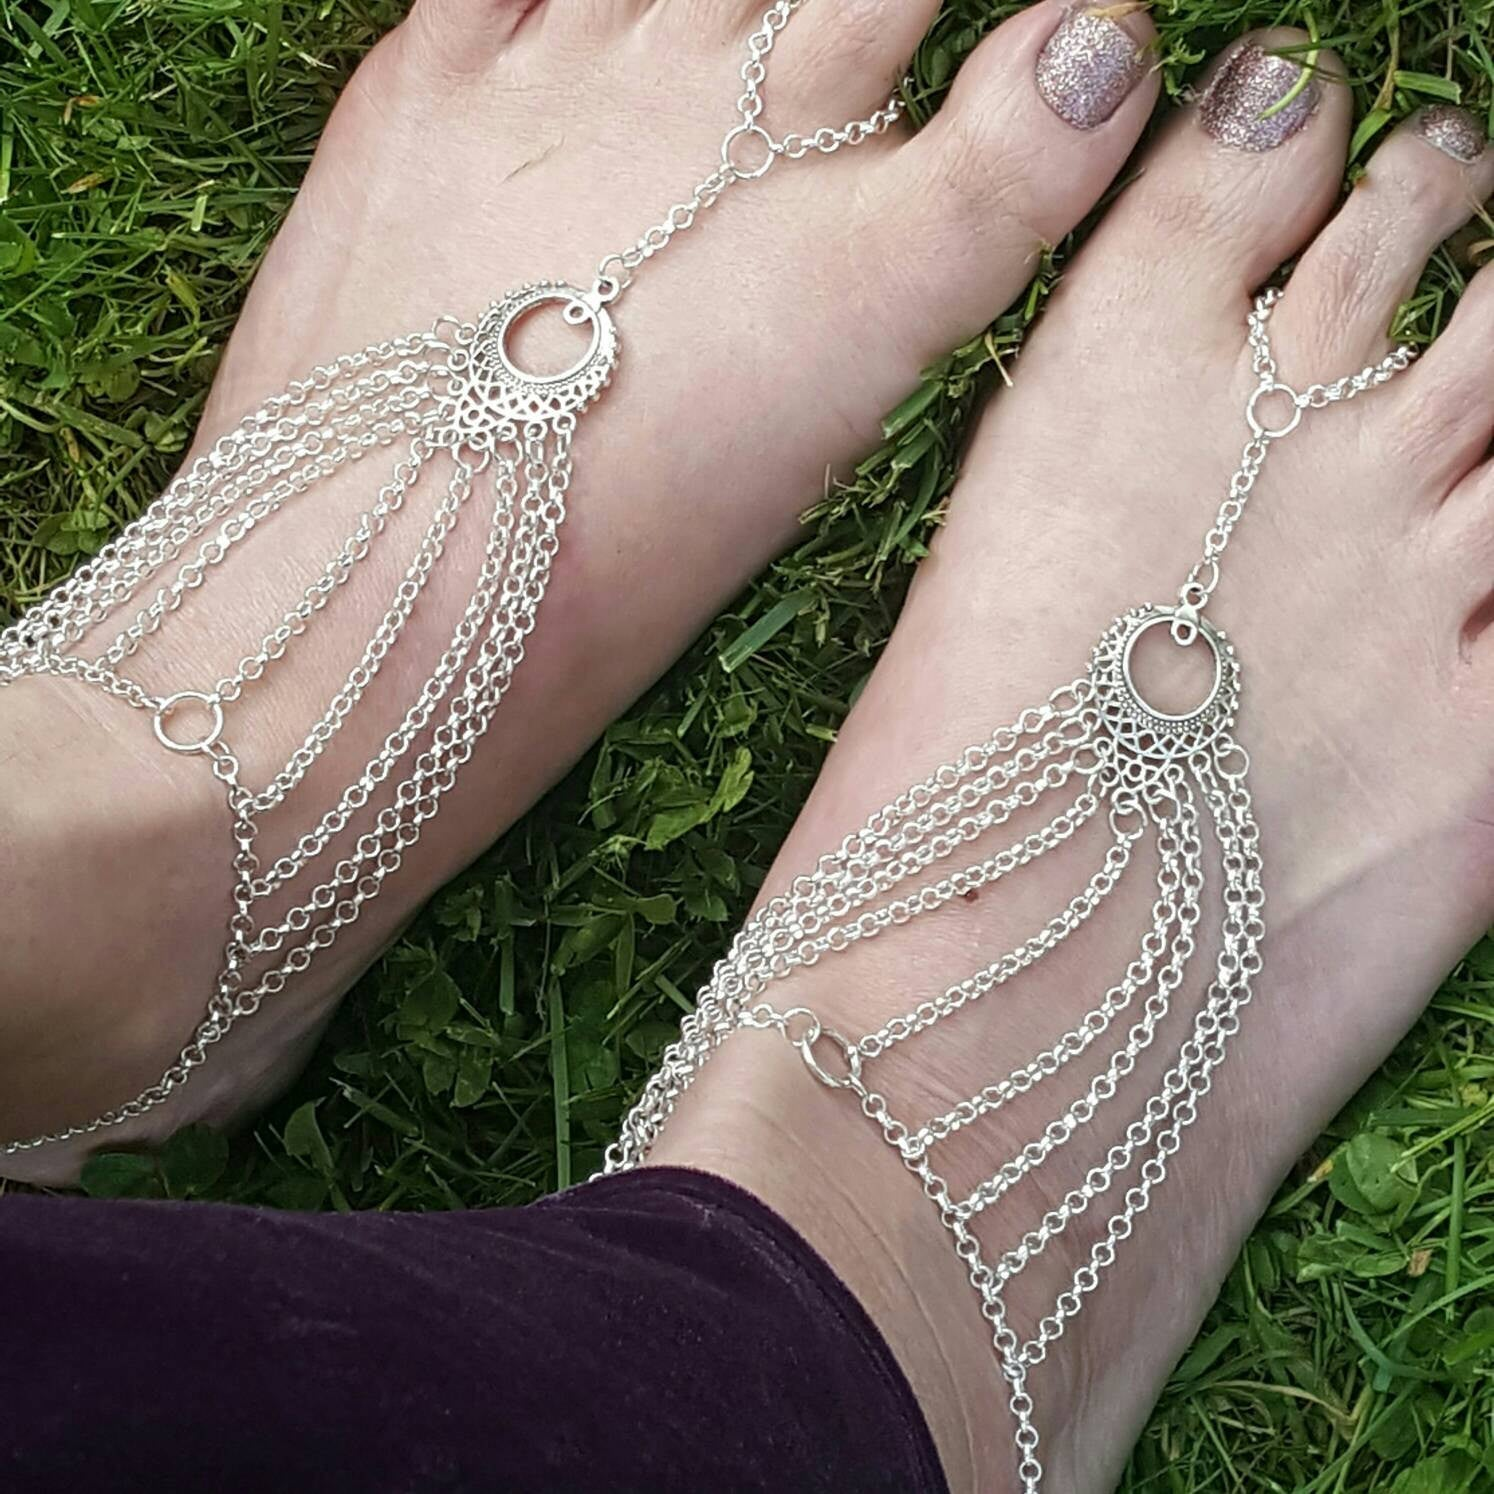 Barefoot Sandals - Foot Jewelry - Tribal Fusion Jewelry - Ren Faire - Slave Jewelry - Slave Anklet - Bohemian Jewelry - Valentines Day Gift - Handmade Jewelry - Ren Faire - DRAVYNMOOR